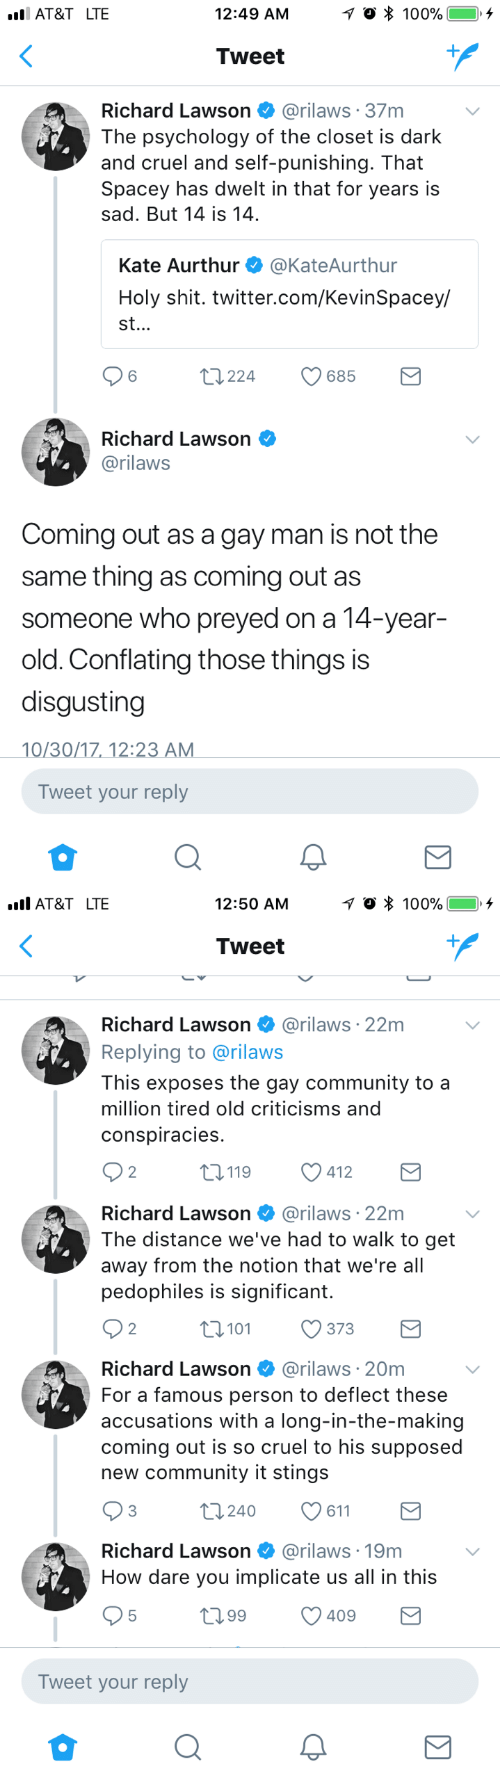 lawson: AT&T LTE  12:49 AM  Tweet  Richard Lawson @rilaws 37m  The psychology of the closet is dark  and cruel and self-punishing. That  Spacey has dwelt in that for years is  sad. But 14 is 14  Kate Aurthur @KateAurthur  Holy shit. twitter.com/KevinSpacey/  st.  6  t224  685  Richard Lawson  @rilaws  Coming out as a gay man is not the  same thing as coming out as  someone who preyed on a 14-year-  old. Conflating those things is  disgusting  0/30/1712:2  Tweet your reply   AT&T LTE  12:50 AM  Tweet  Richard Lawson @rilaws·22m  Replying to @rilaws  This exposes the gay community to a  million tired old criticisms and  conspiracies  2  0119 412  Richard Lawson @rilaws 22m  The distance we've had to walk to get  away from the notion that we're all  pedophiles is significant.  2  0101373  Richard Lawson @rilaws 20m  For a famous person to deflect these  accusations with a long-in-the-making  coming out is so cruel to his supposed  new community it stings  3  t0240 611  Richard Lawson  @rilaws·19m  How dare you implicate us all in this  t099 409  Tweet your reply